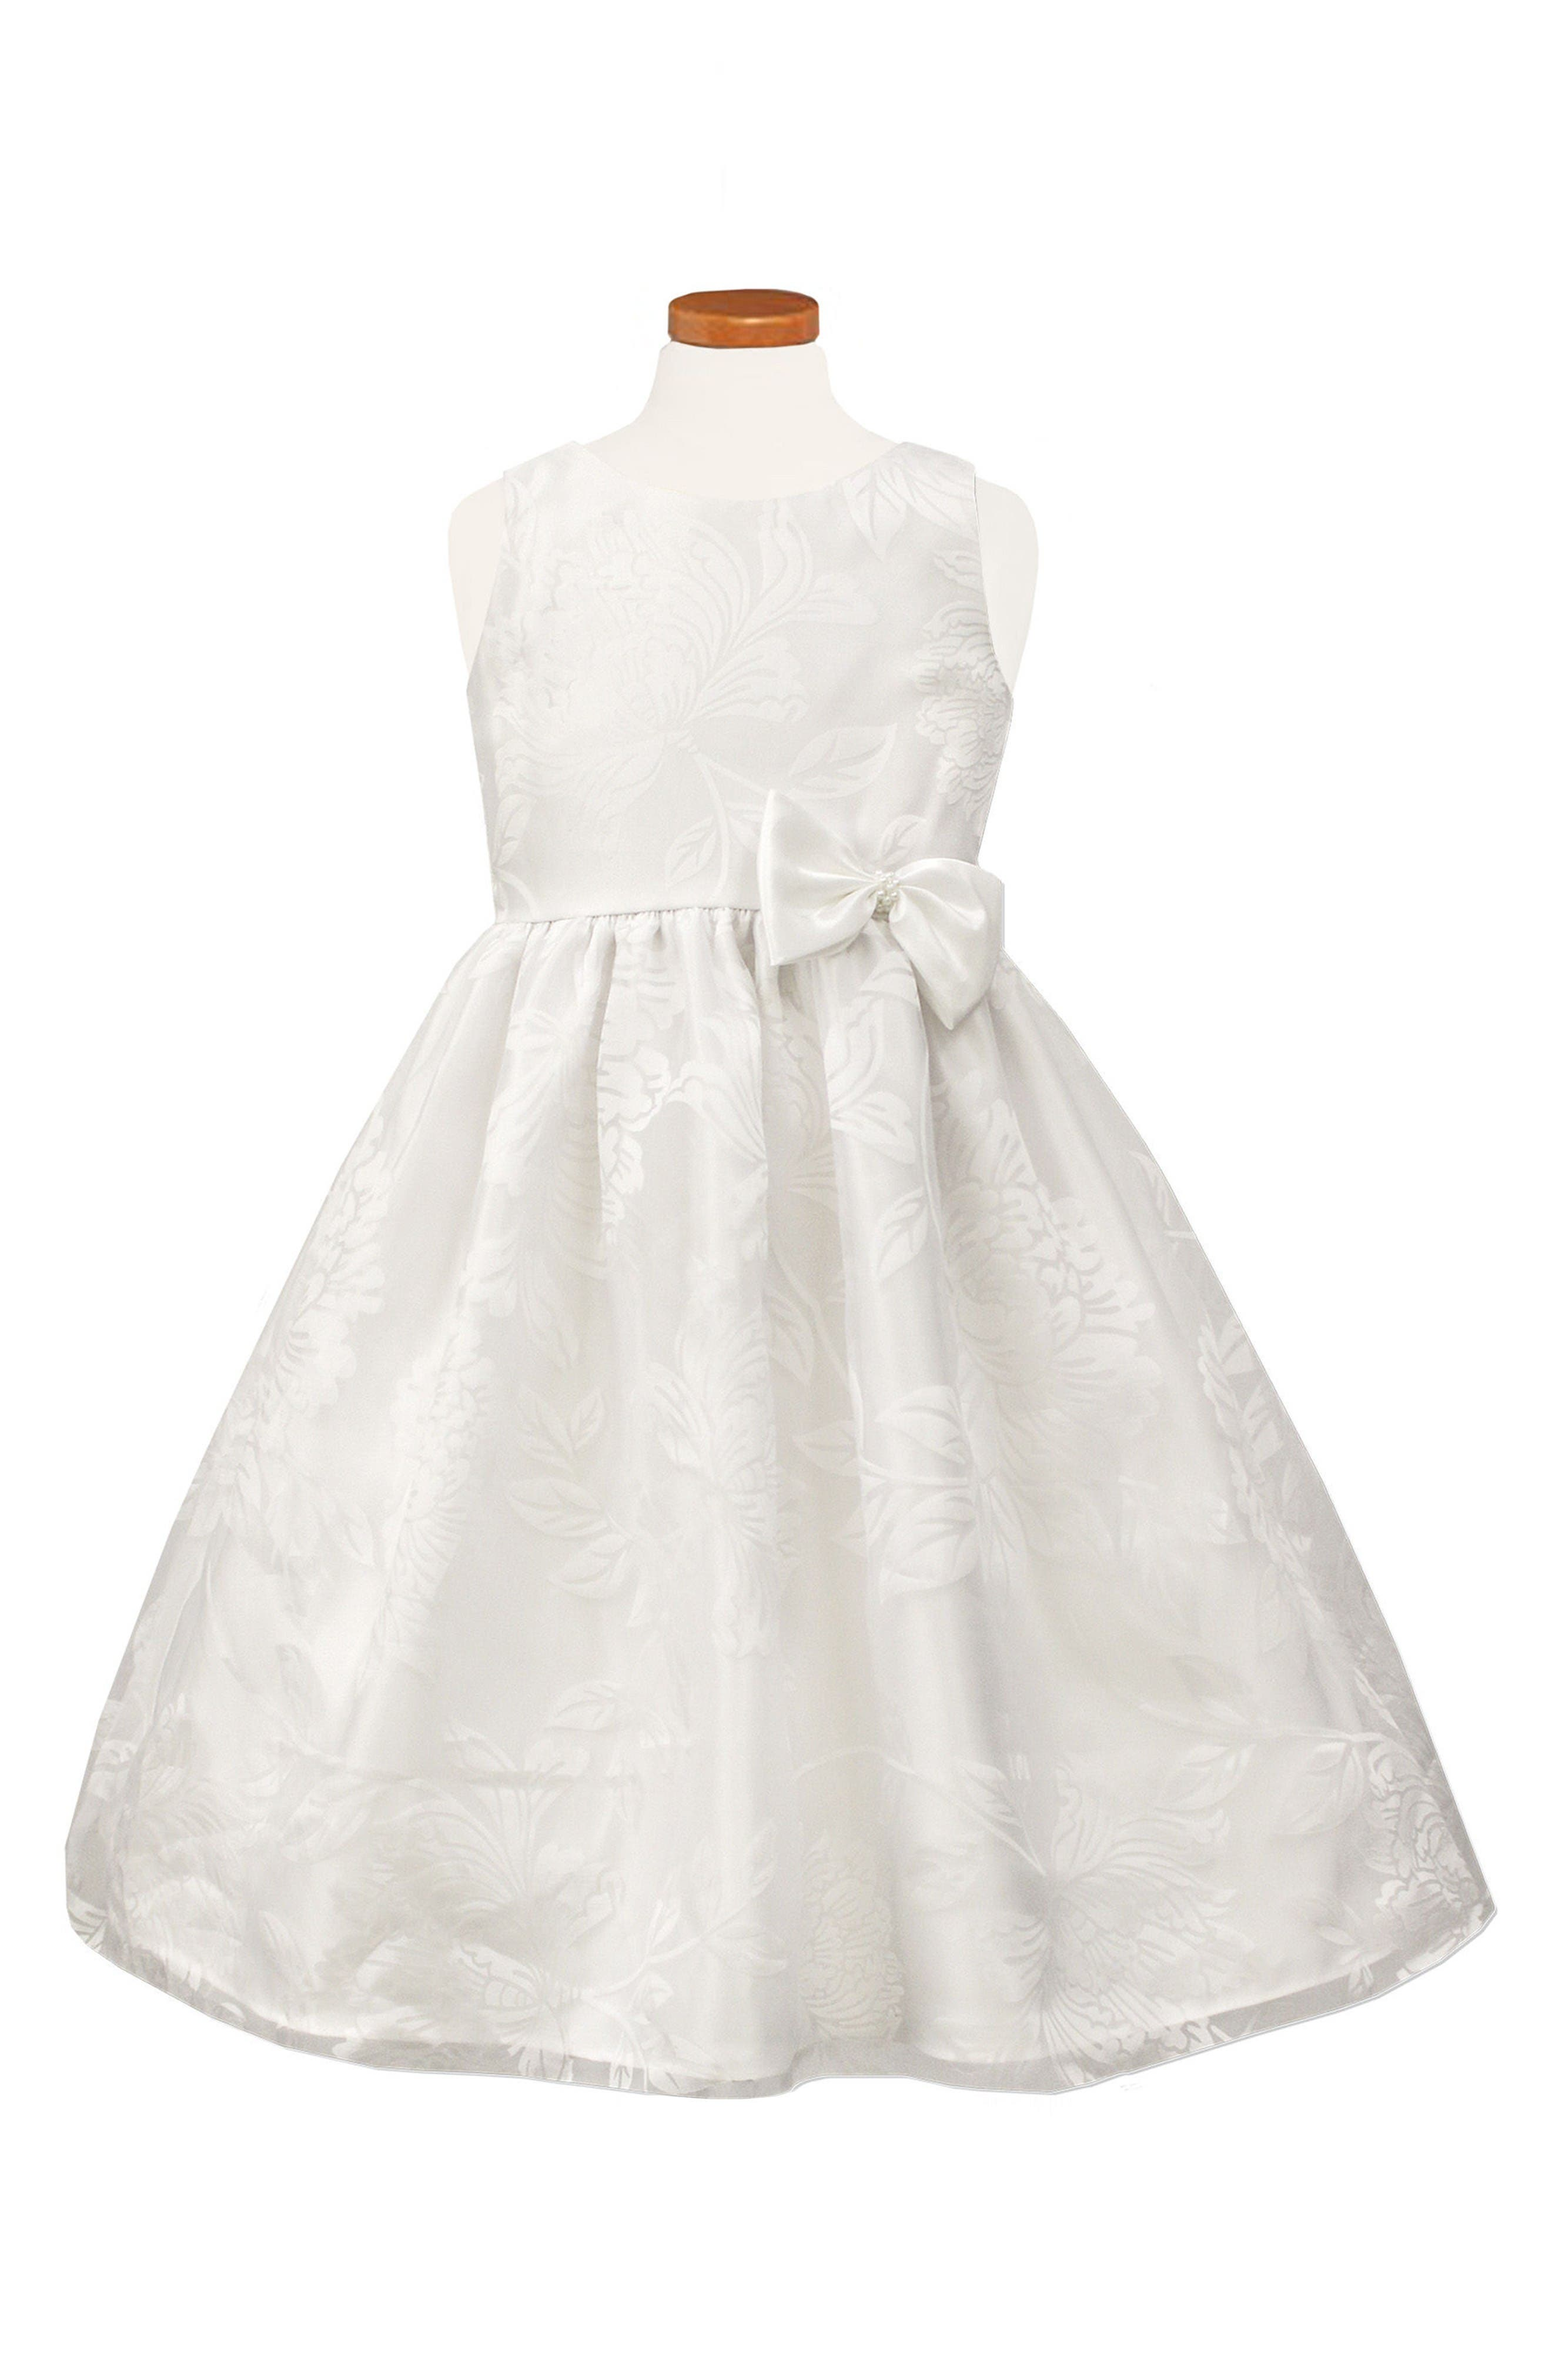 Alternate Image 1 Selected - Sorbet Floral Burnout Organza Dress (Toddler Girls, Little Girls & Big Girls)